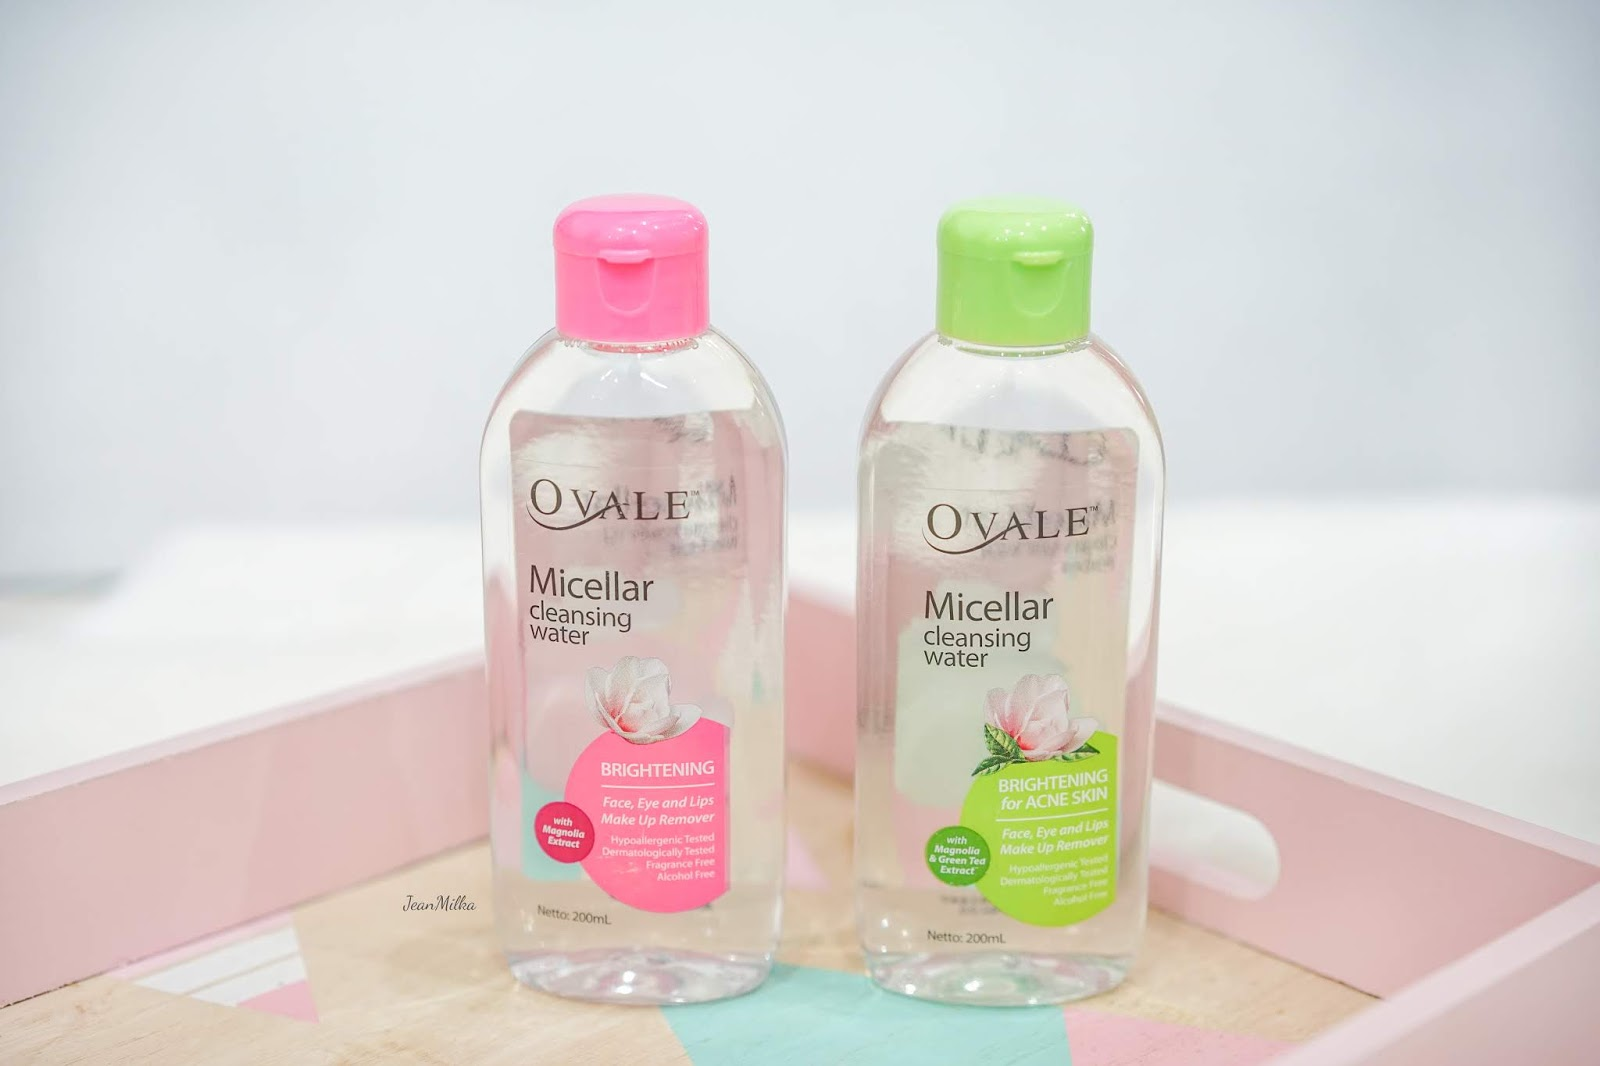 ovale, ovale micellar water, ovale cleansing water, micellar water, review ovale, review ovale cleansing water, review ovale micellar water